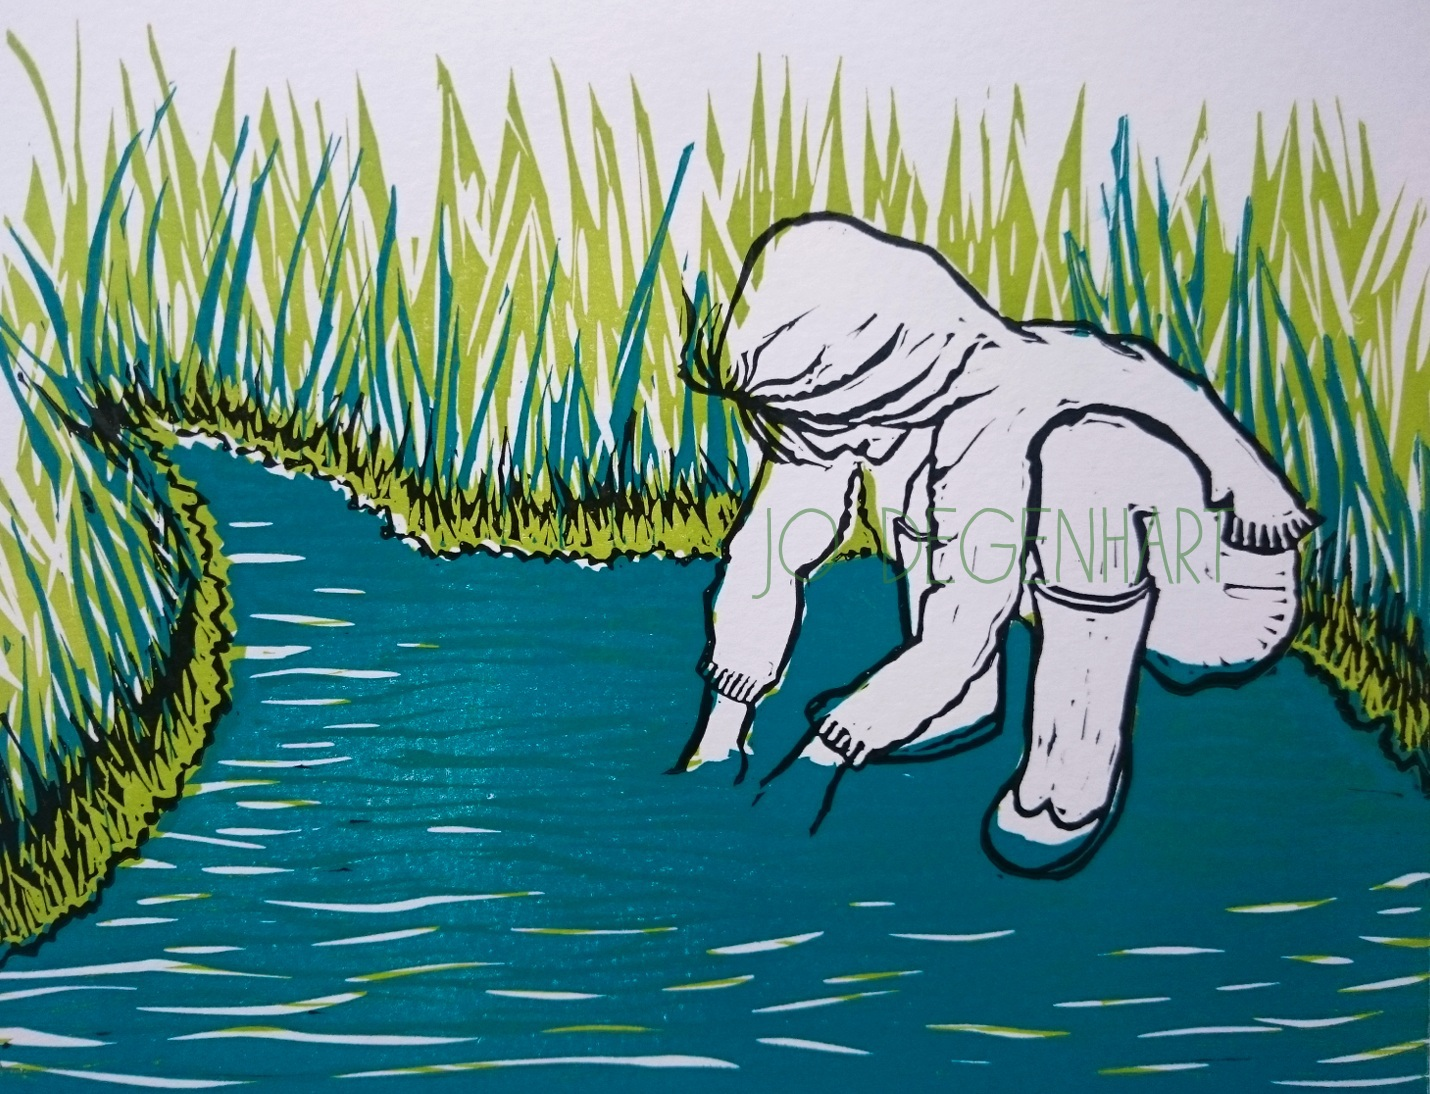 'Paddling in the Stream' a lino print by Jo Degenhart